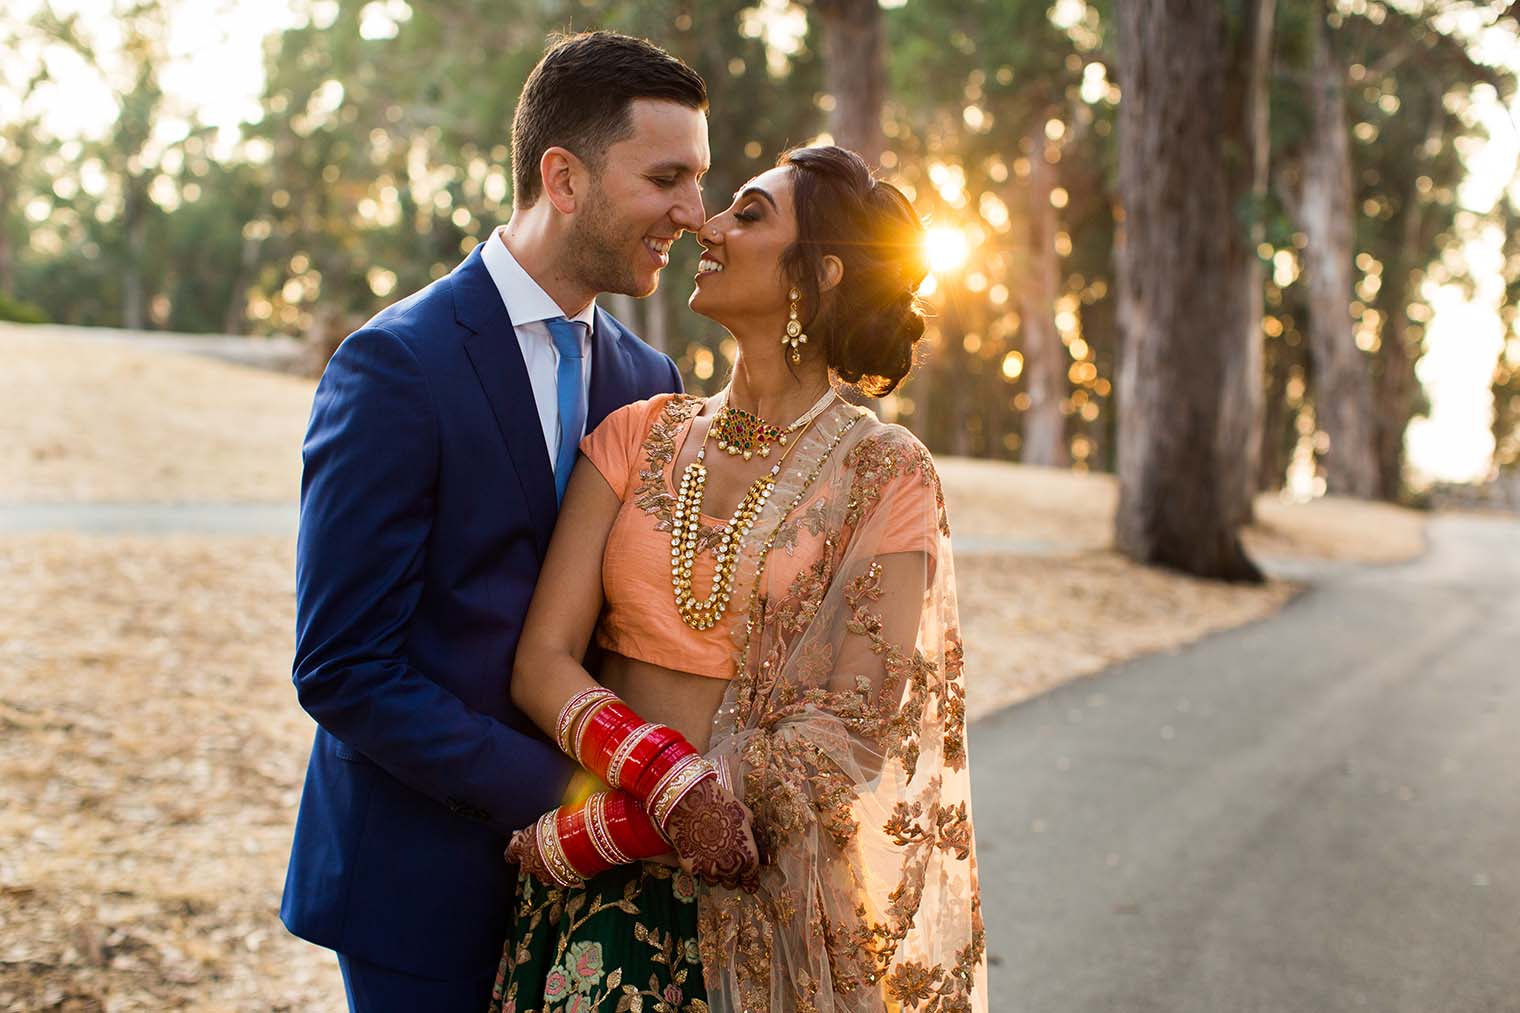 bride and groom portraits at curiodyssey in san mateo california